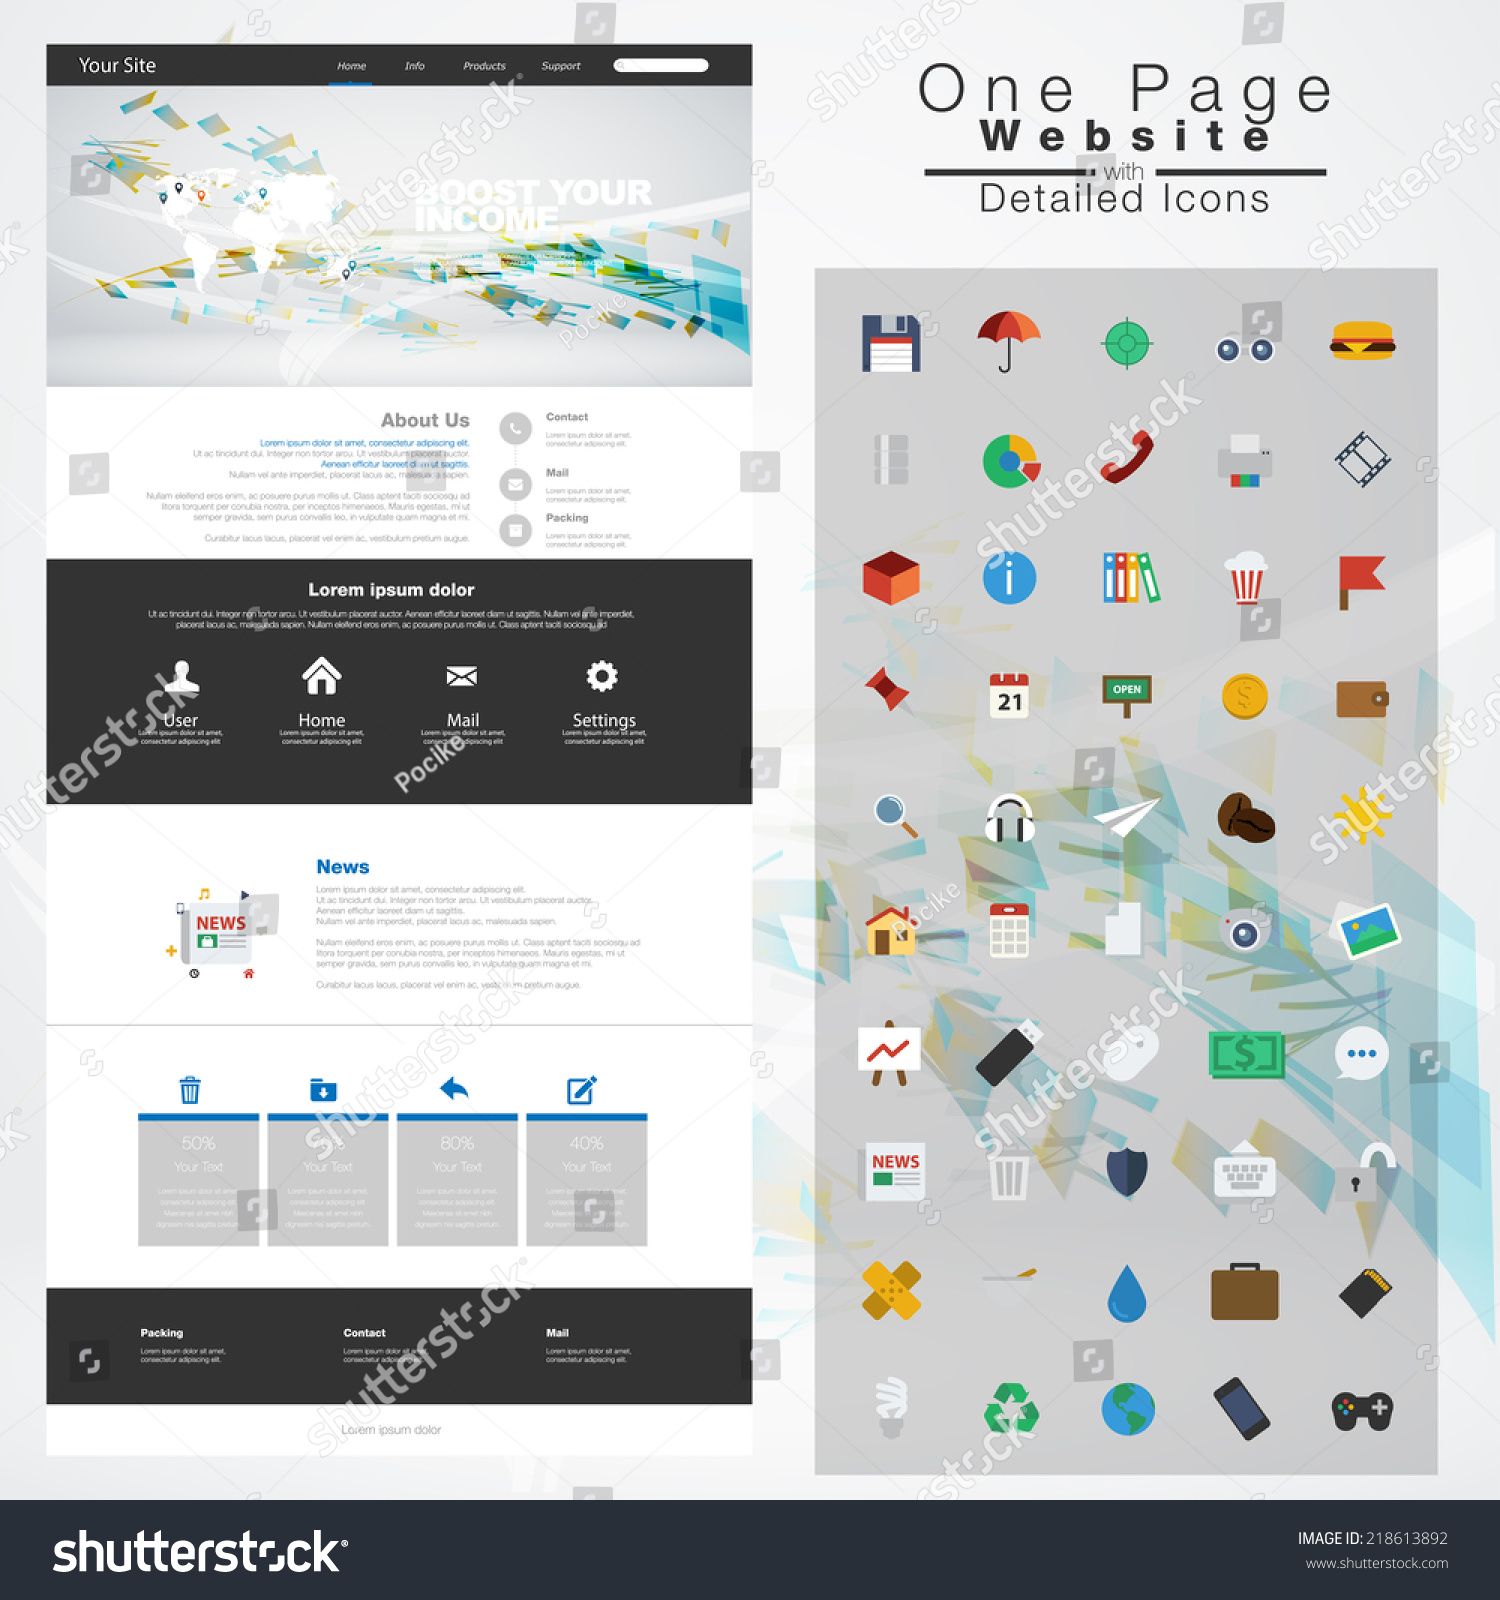 one page website design template all in one set for website design